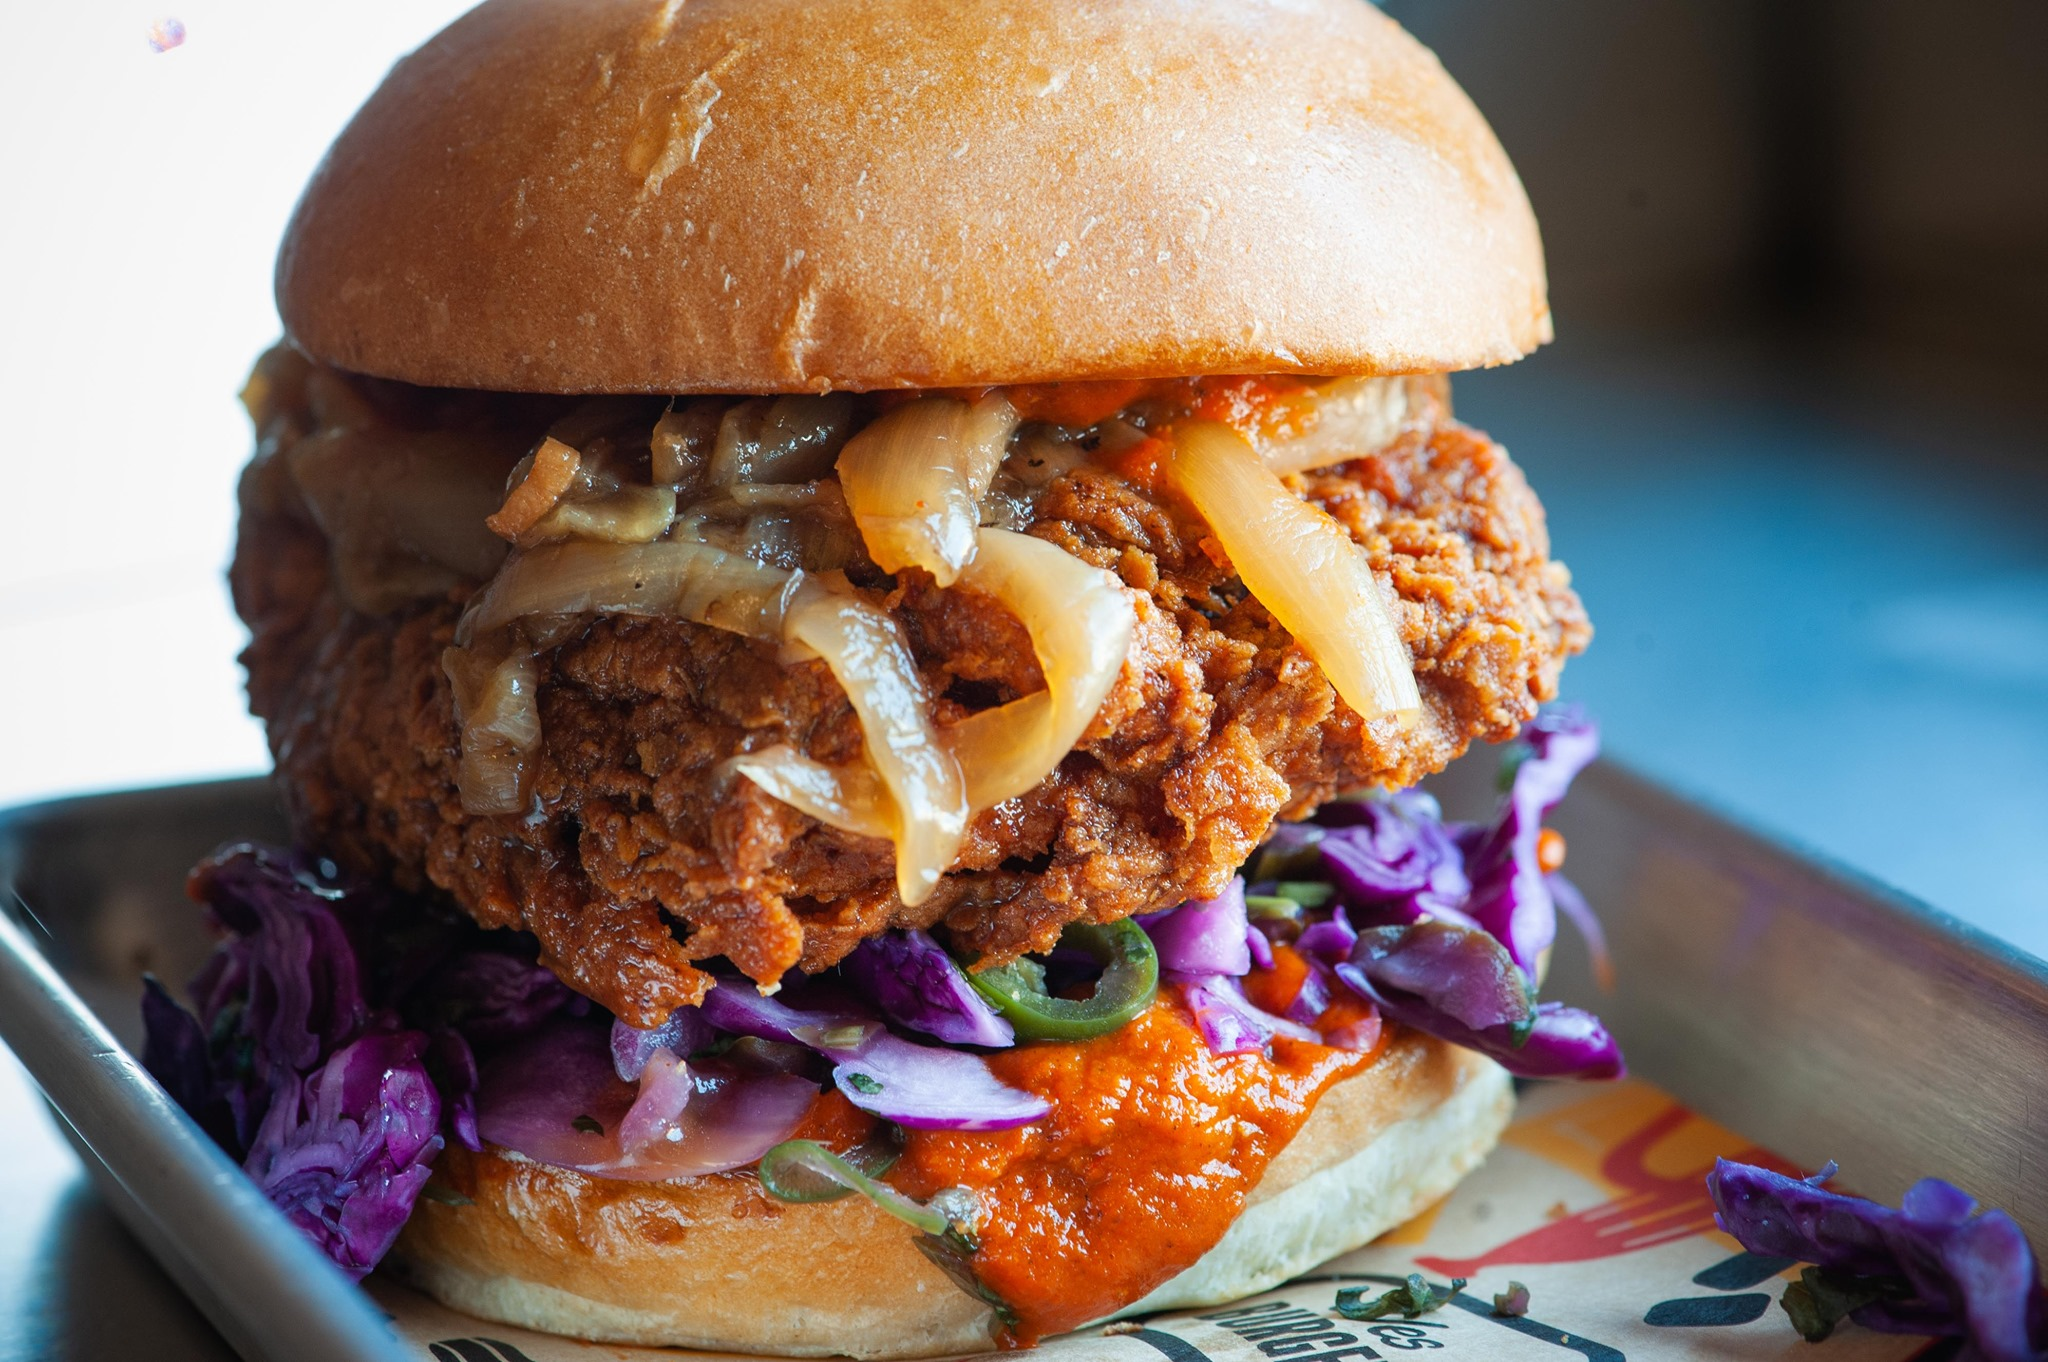 Fried chicken sandwich from WesBurger